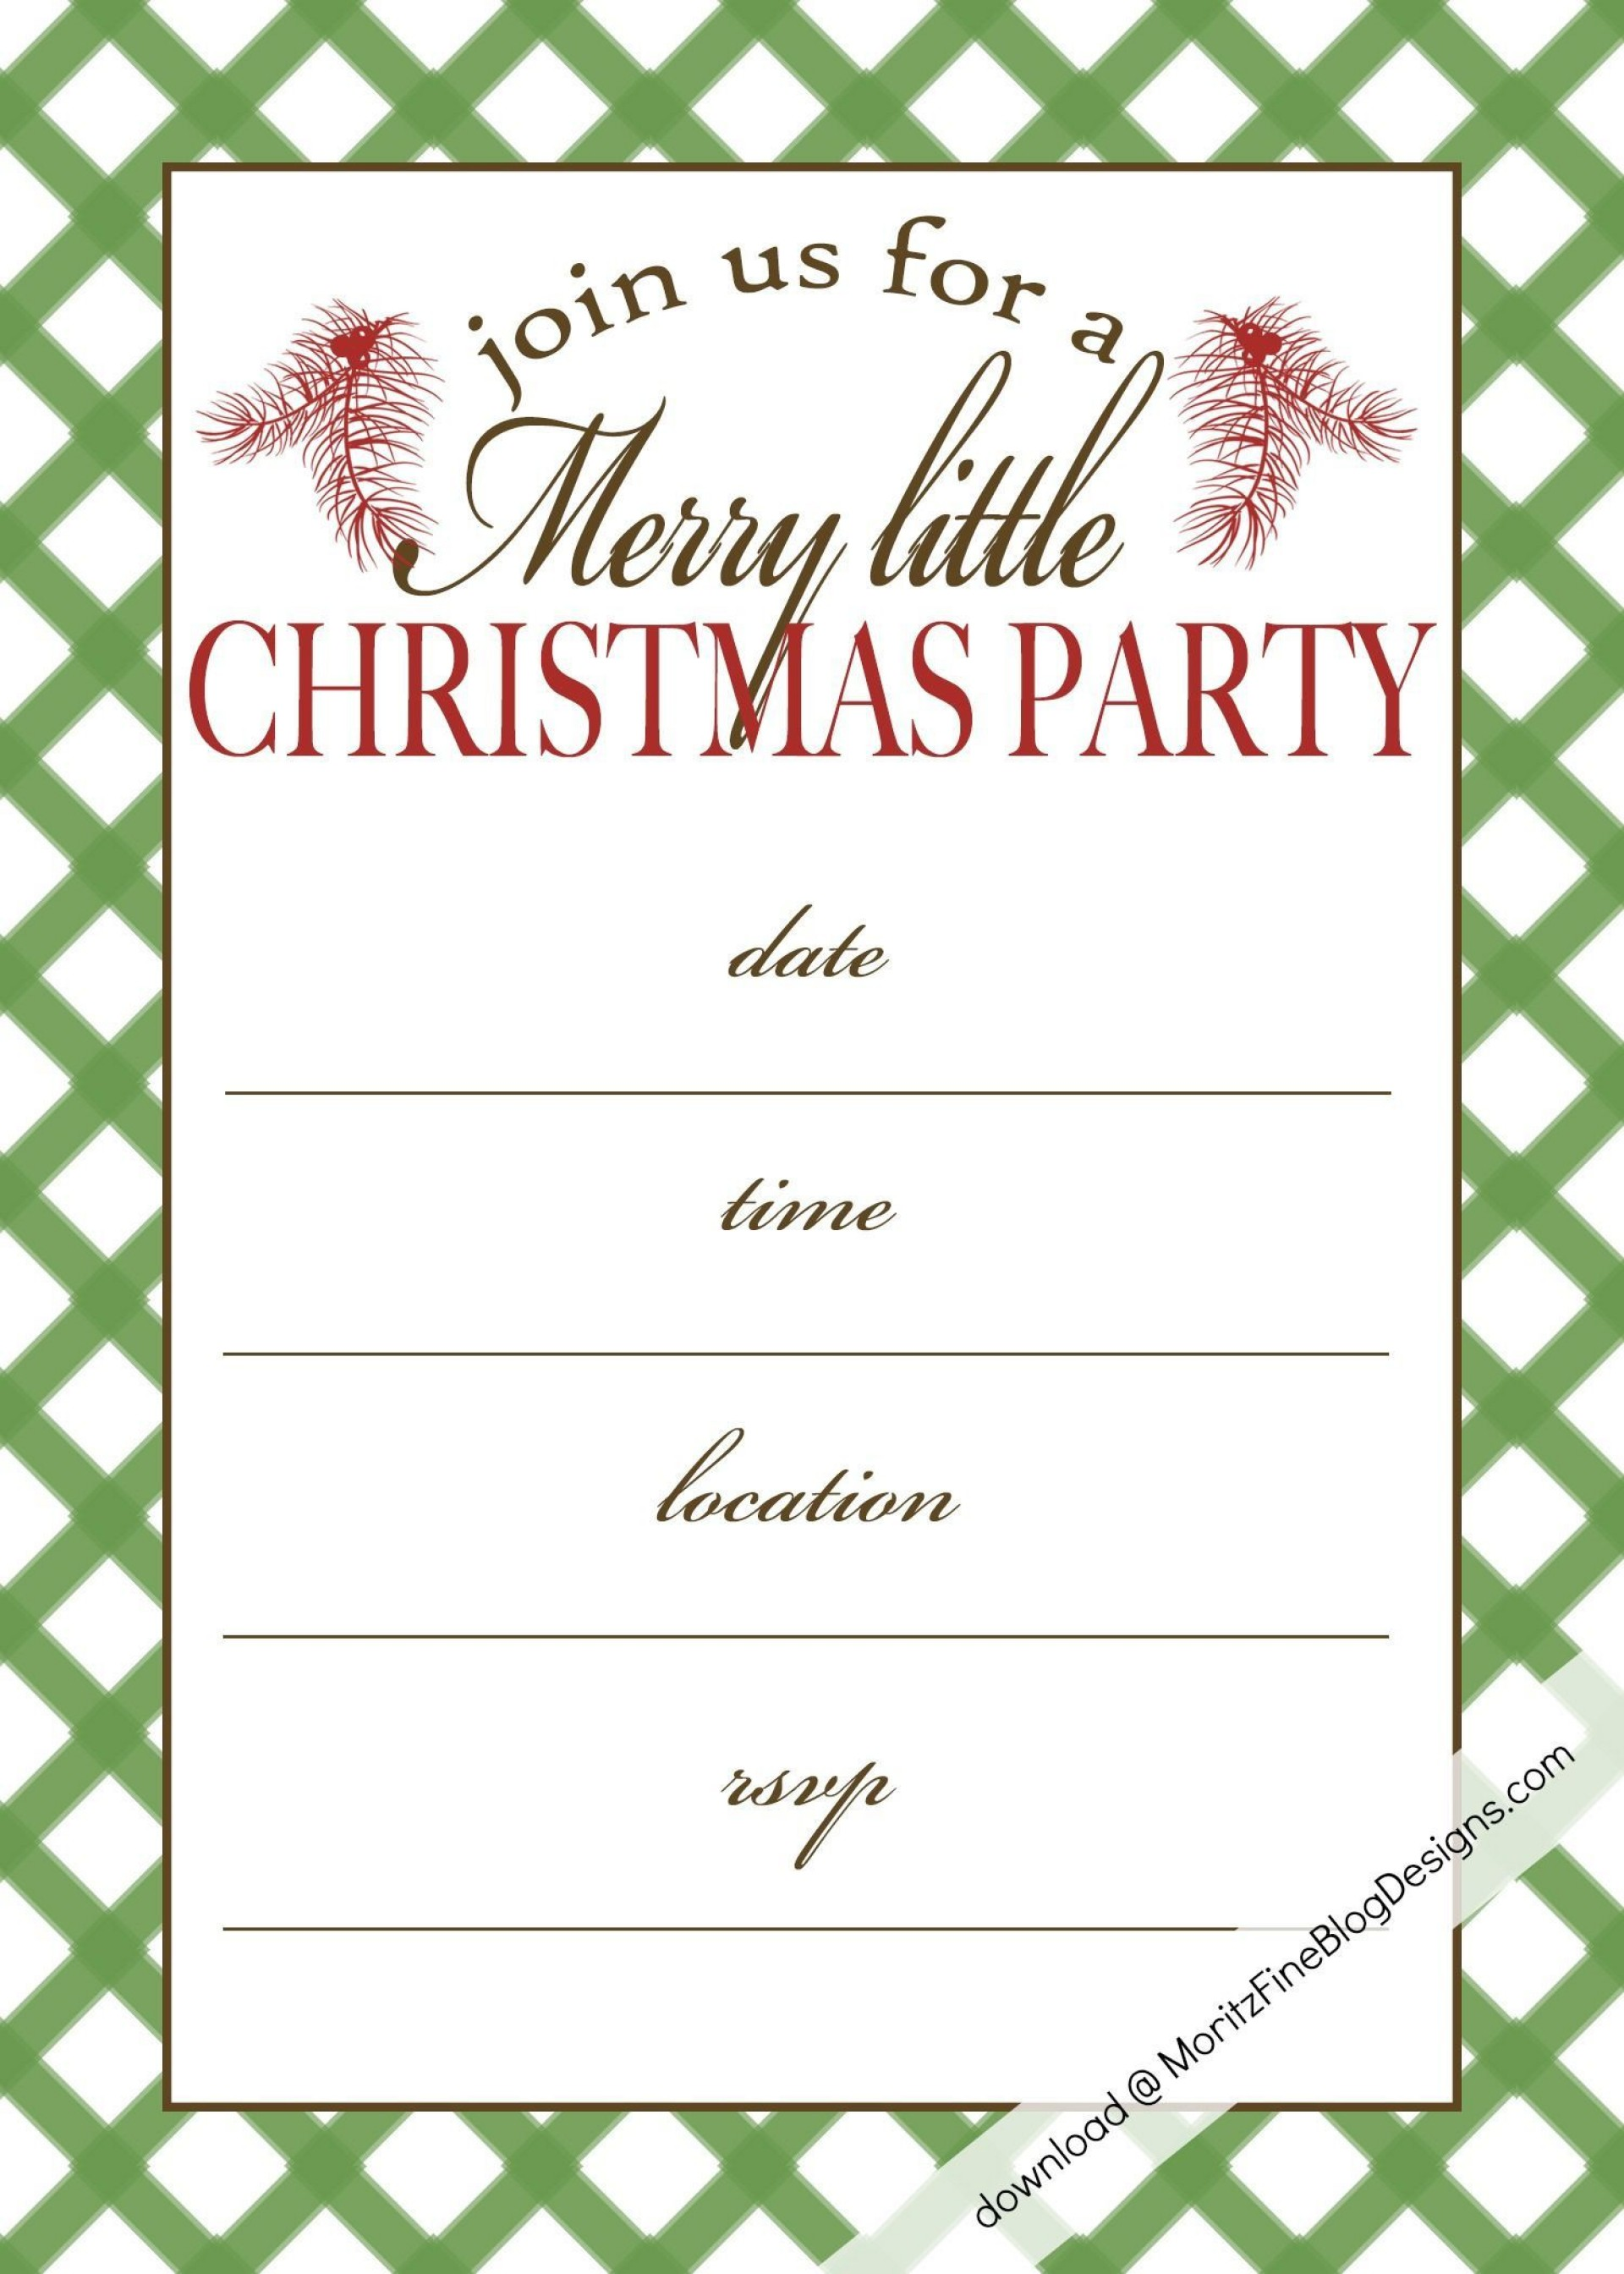 002 Awesome Xma Party Invite Template Free Photo  Holiday Invitation Word Download Christma1920